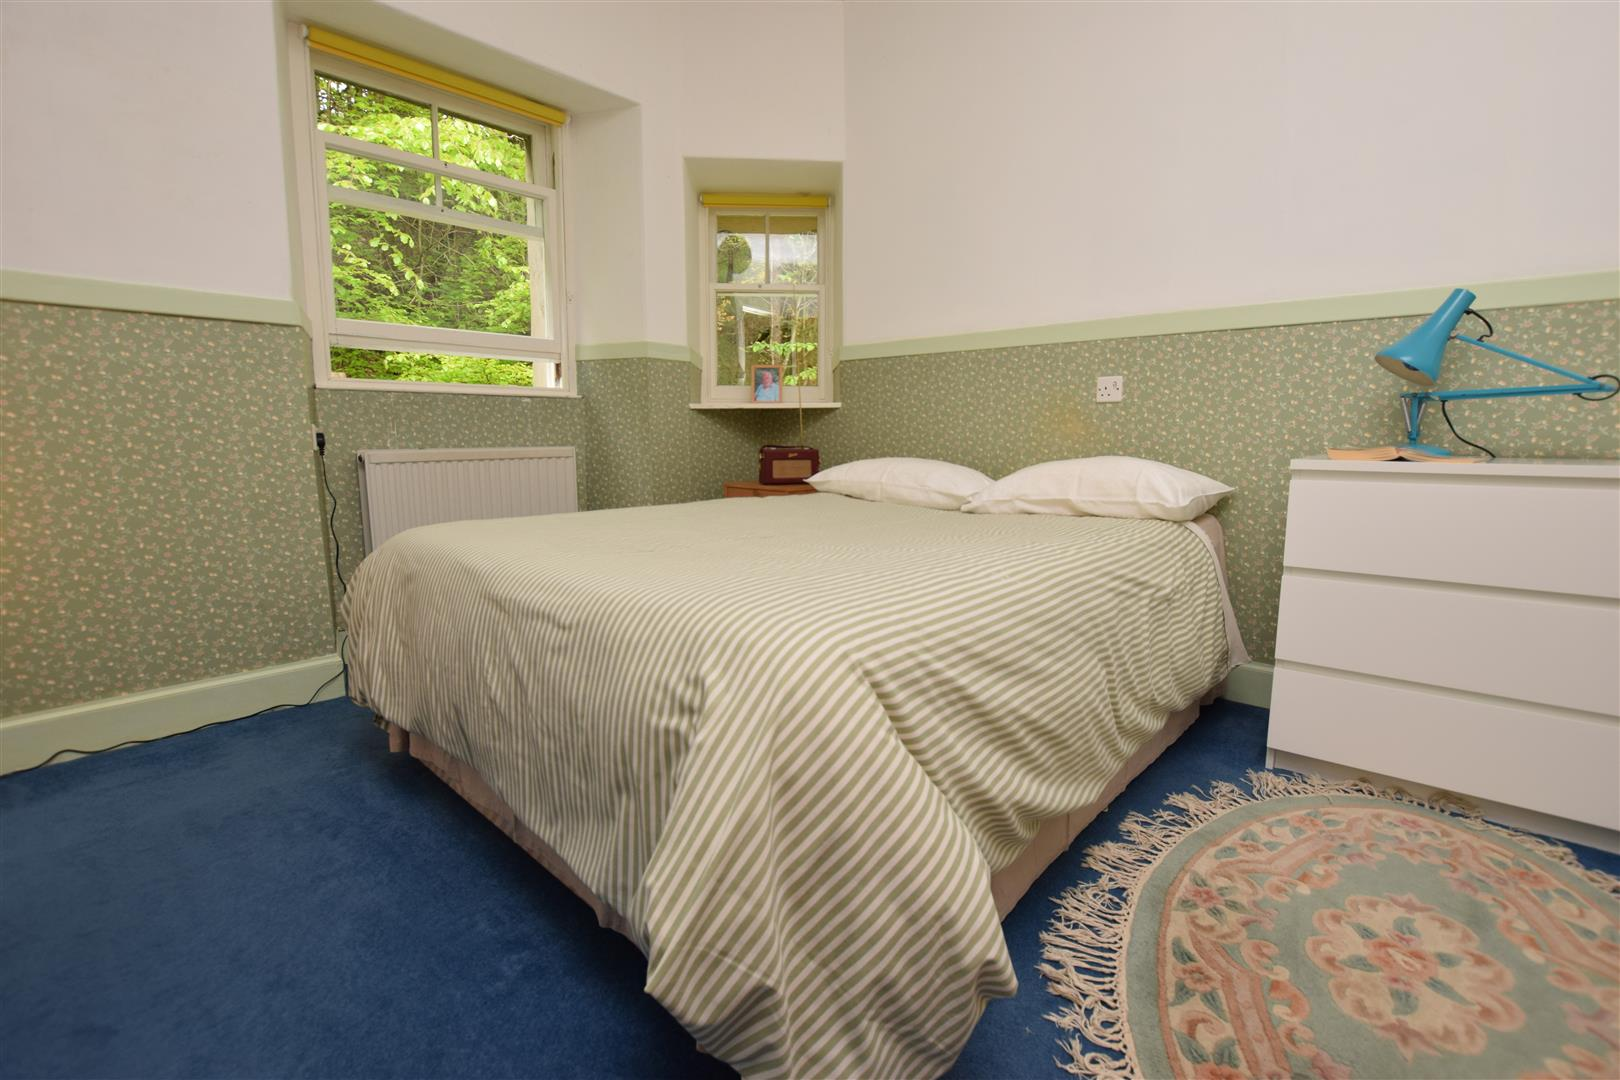 East Lodge, Faskally, Pitlochry, Perthshire, PH16 5JZ, UK